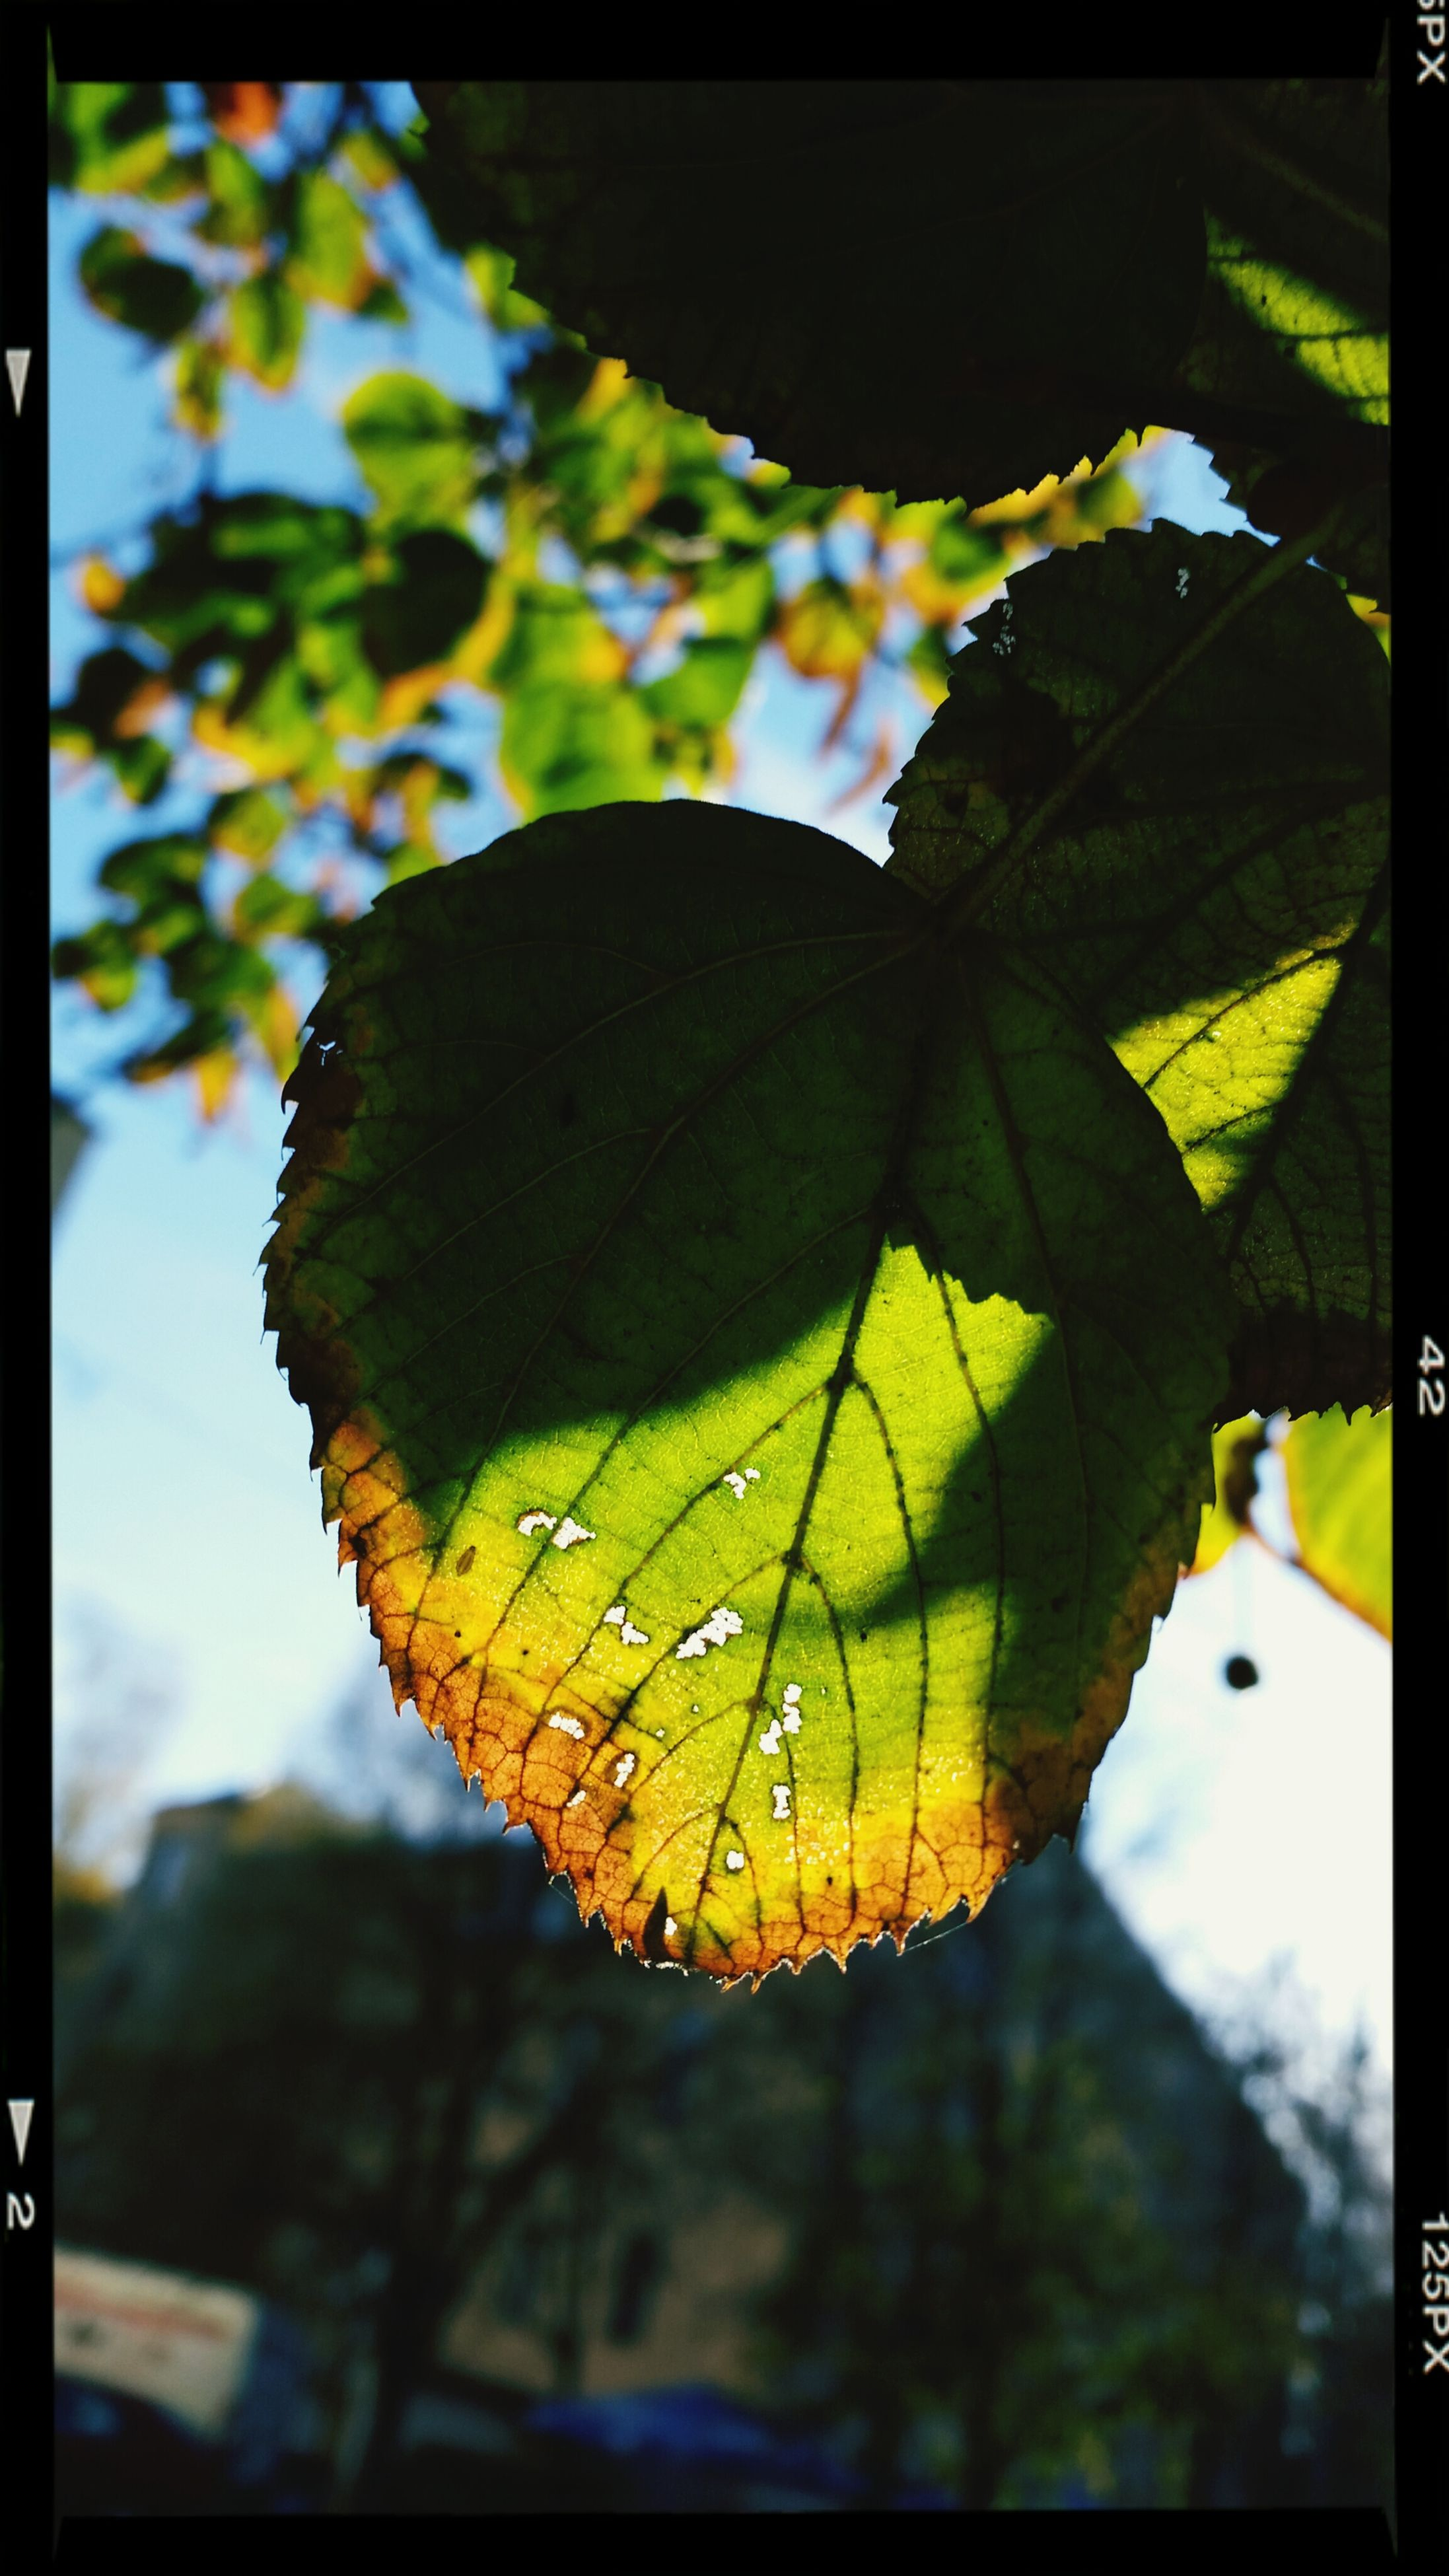 leaf, focus on foreground, close-up, transfer print, leaf vein, auto post production filter, yellow, tree, growth, green color, day, sky, selective focus, nature, outdoors, sunlight, no people, built structure, autumn, branch